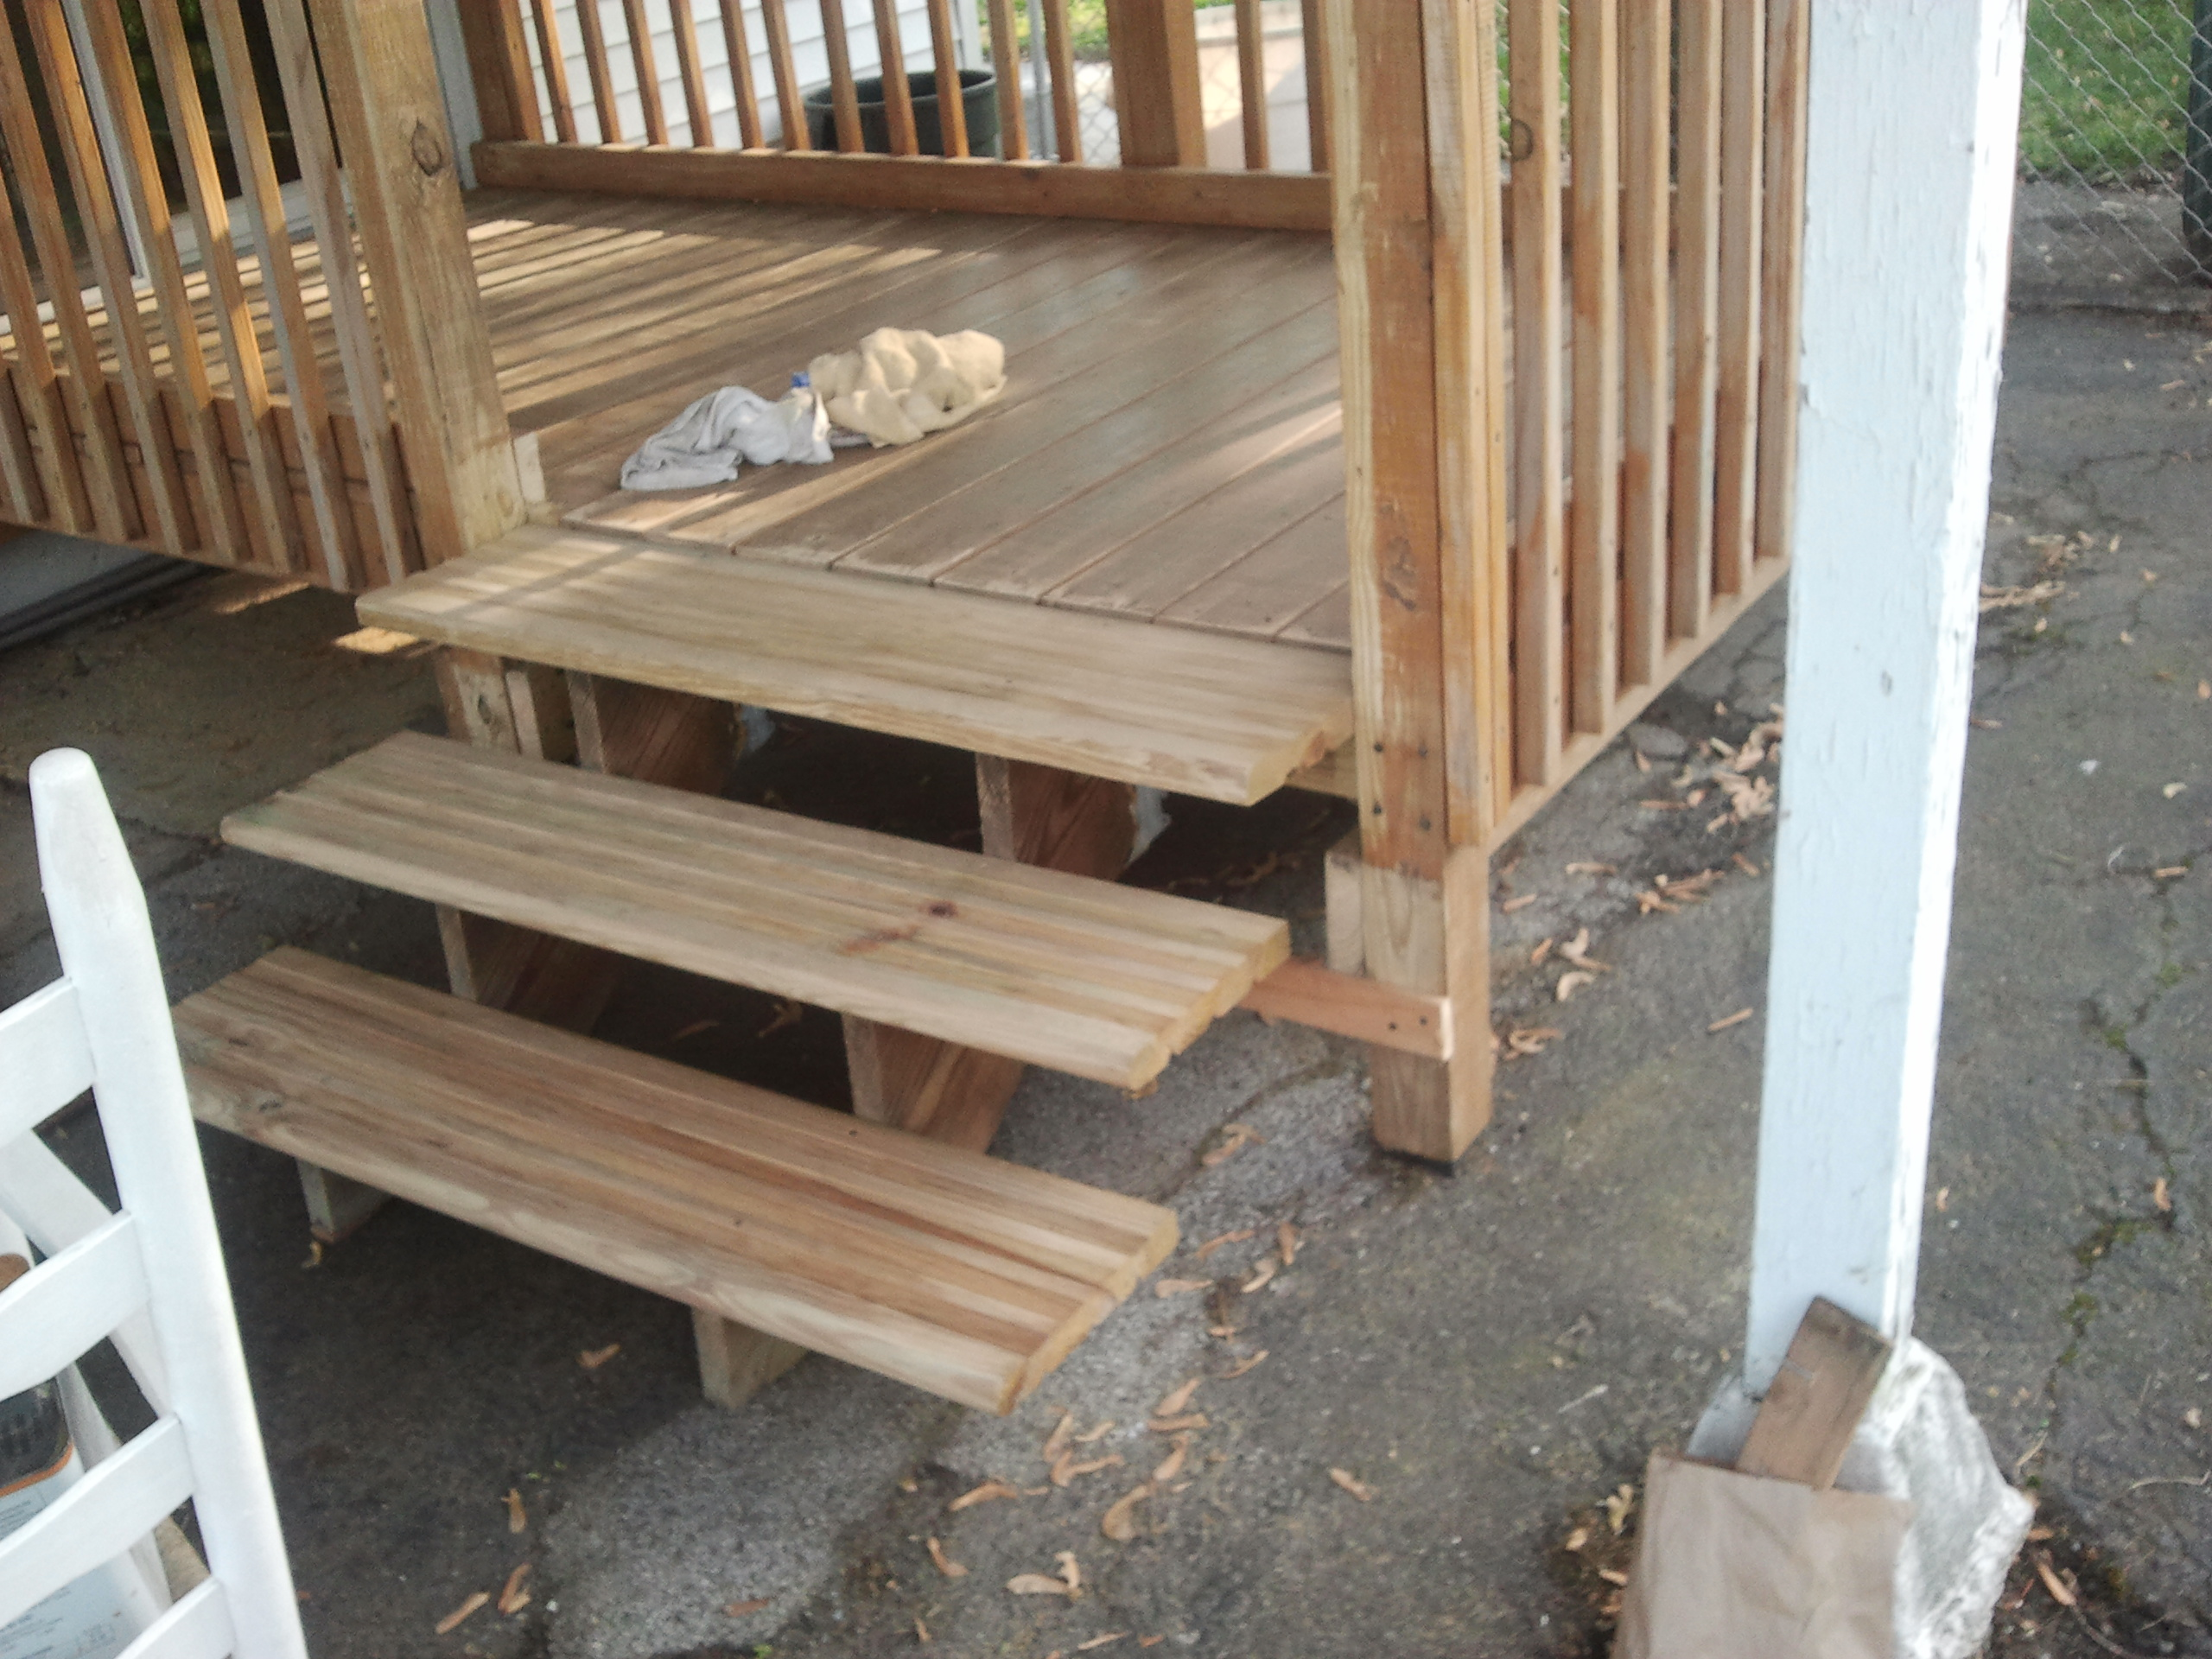 mrt-deck-stairs-stain-nj